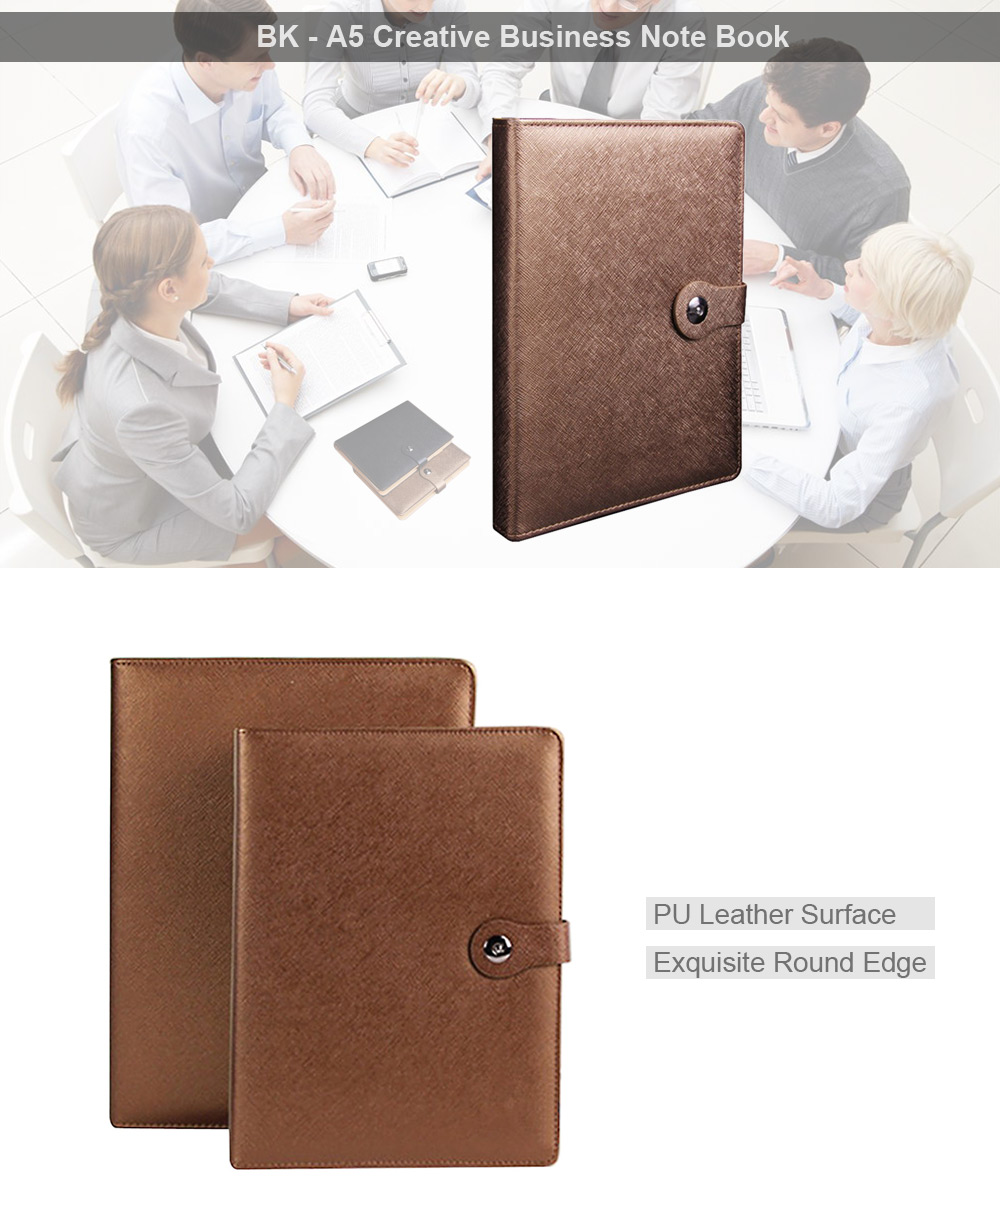 BK - A5 Creative Business Note Book with Card Slot